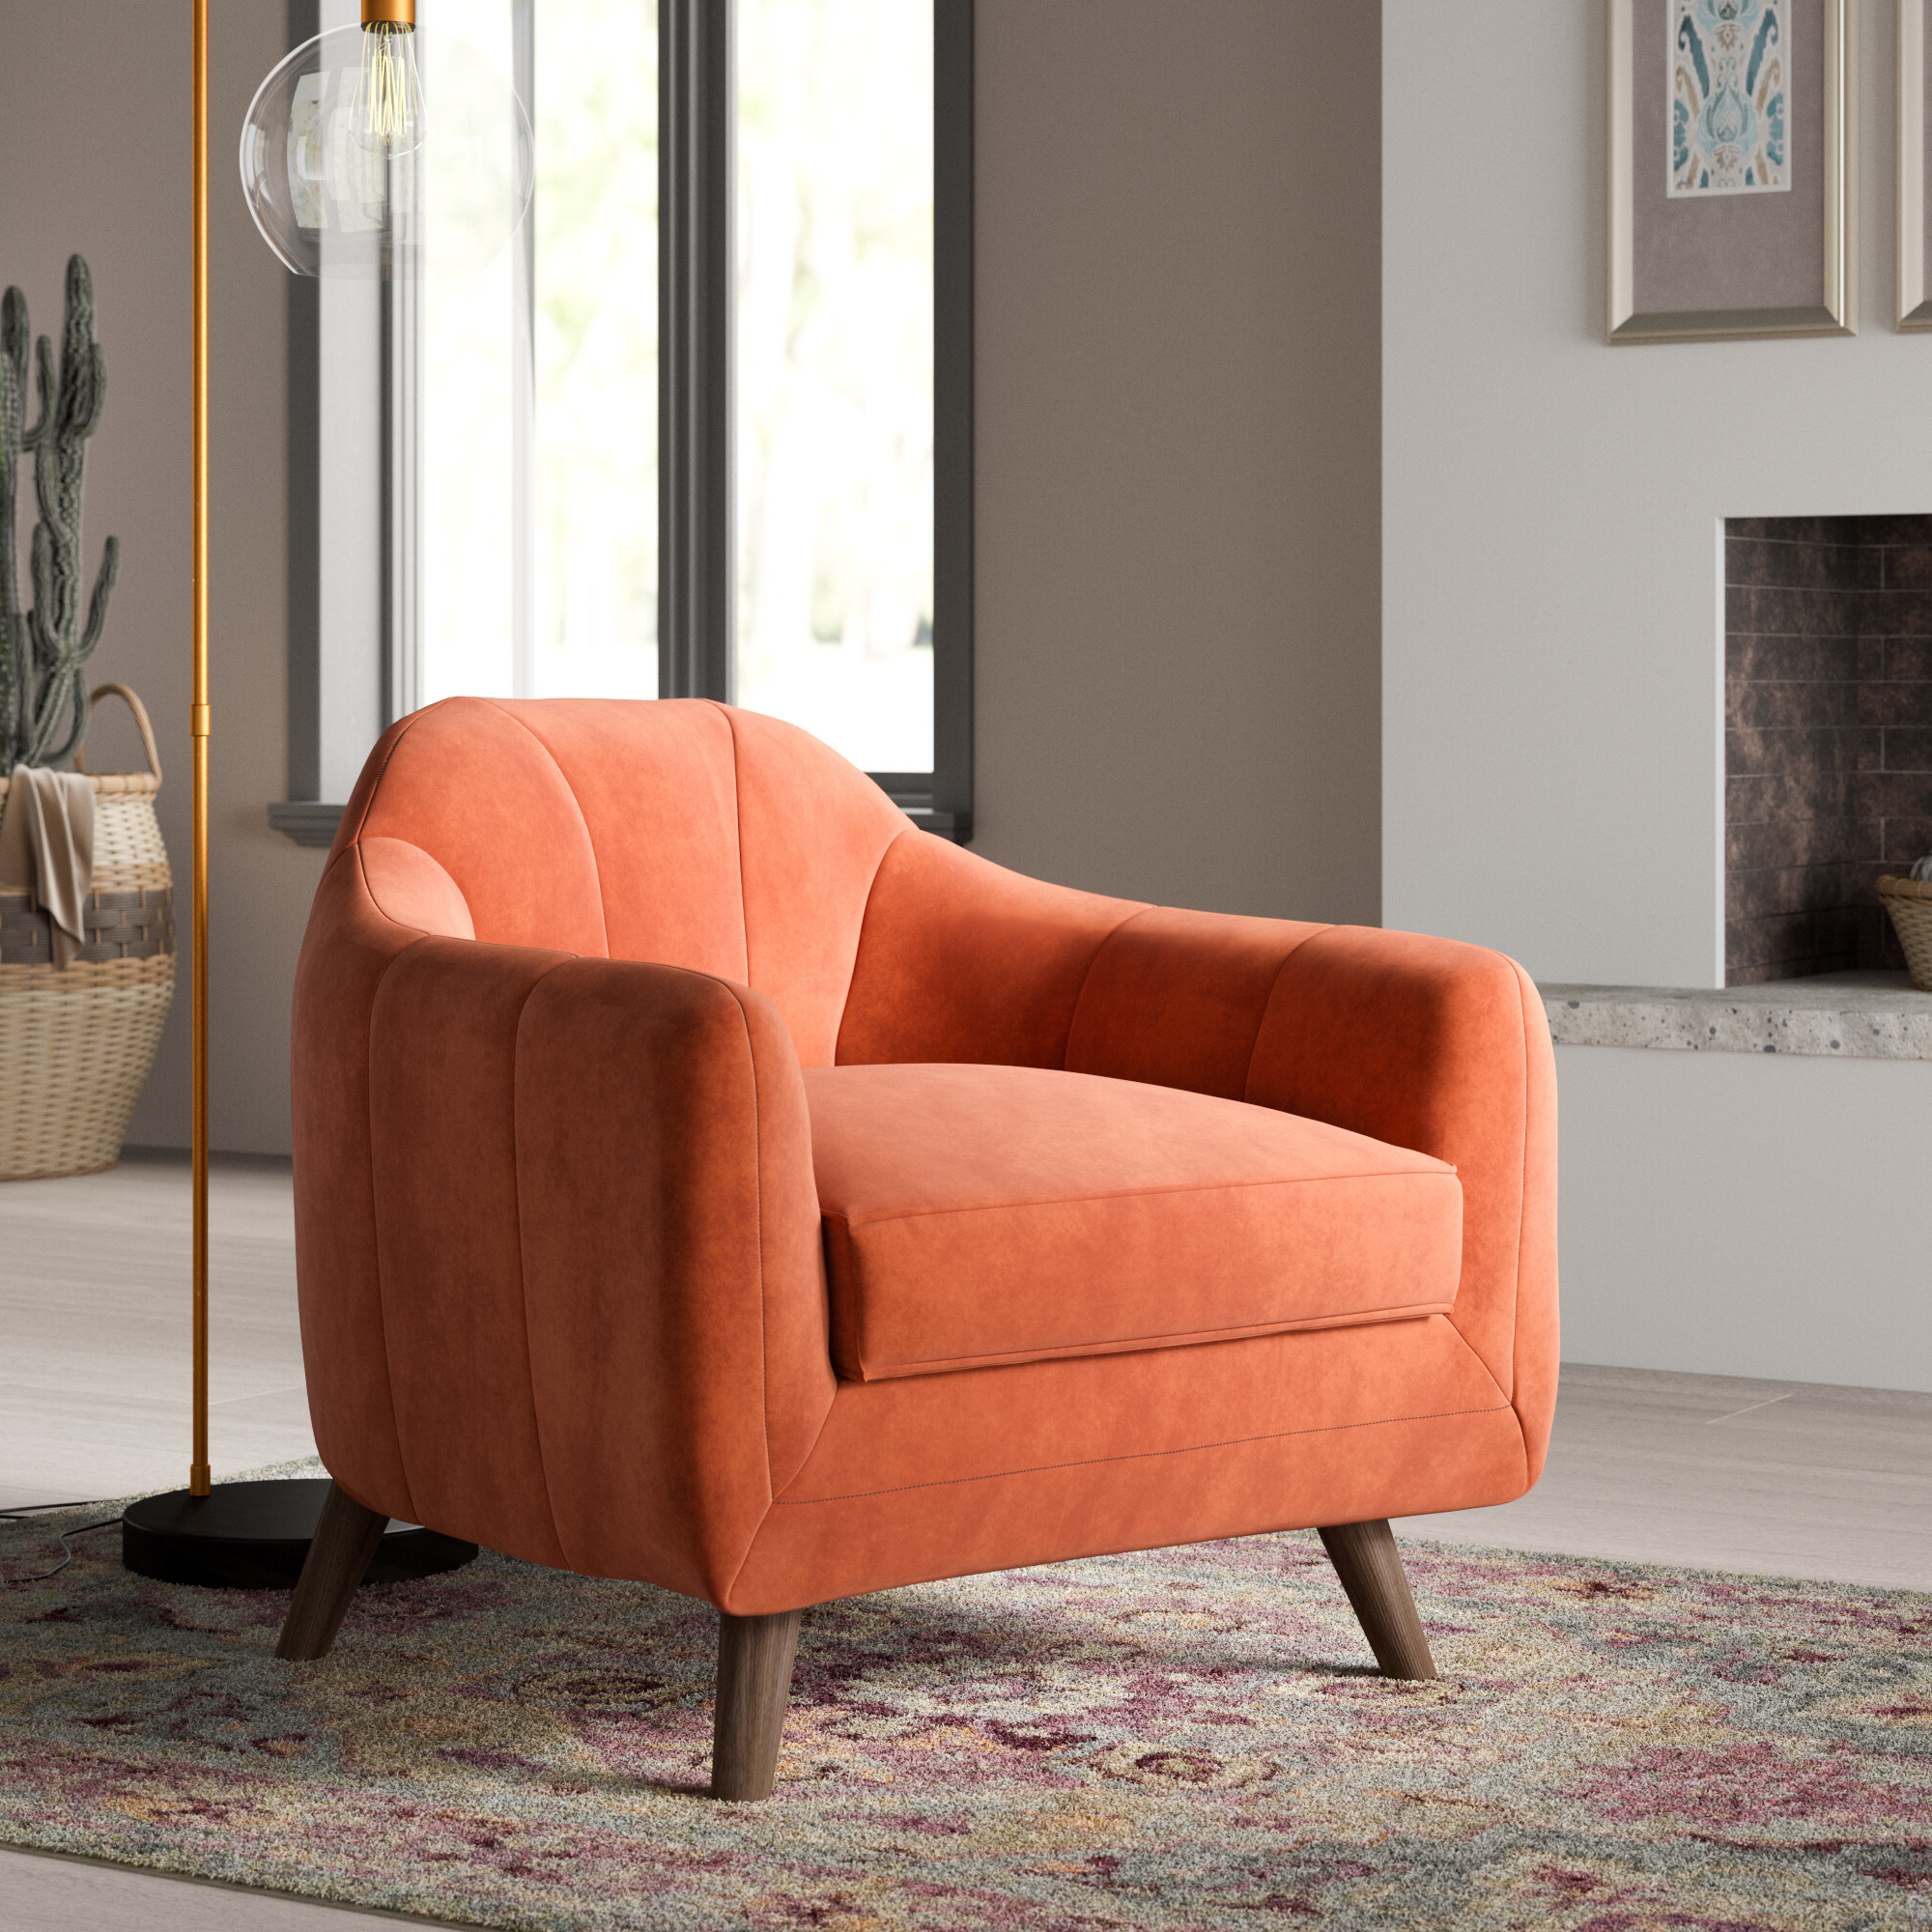 Wayfair In Fashionable Artressia Barrel Chairs (View 8 of 20)